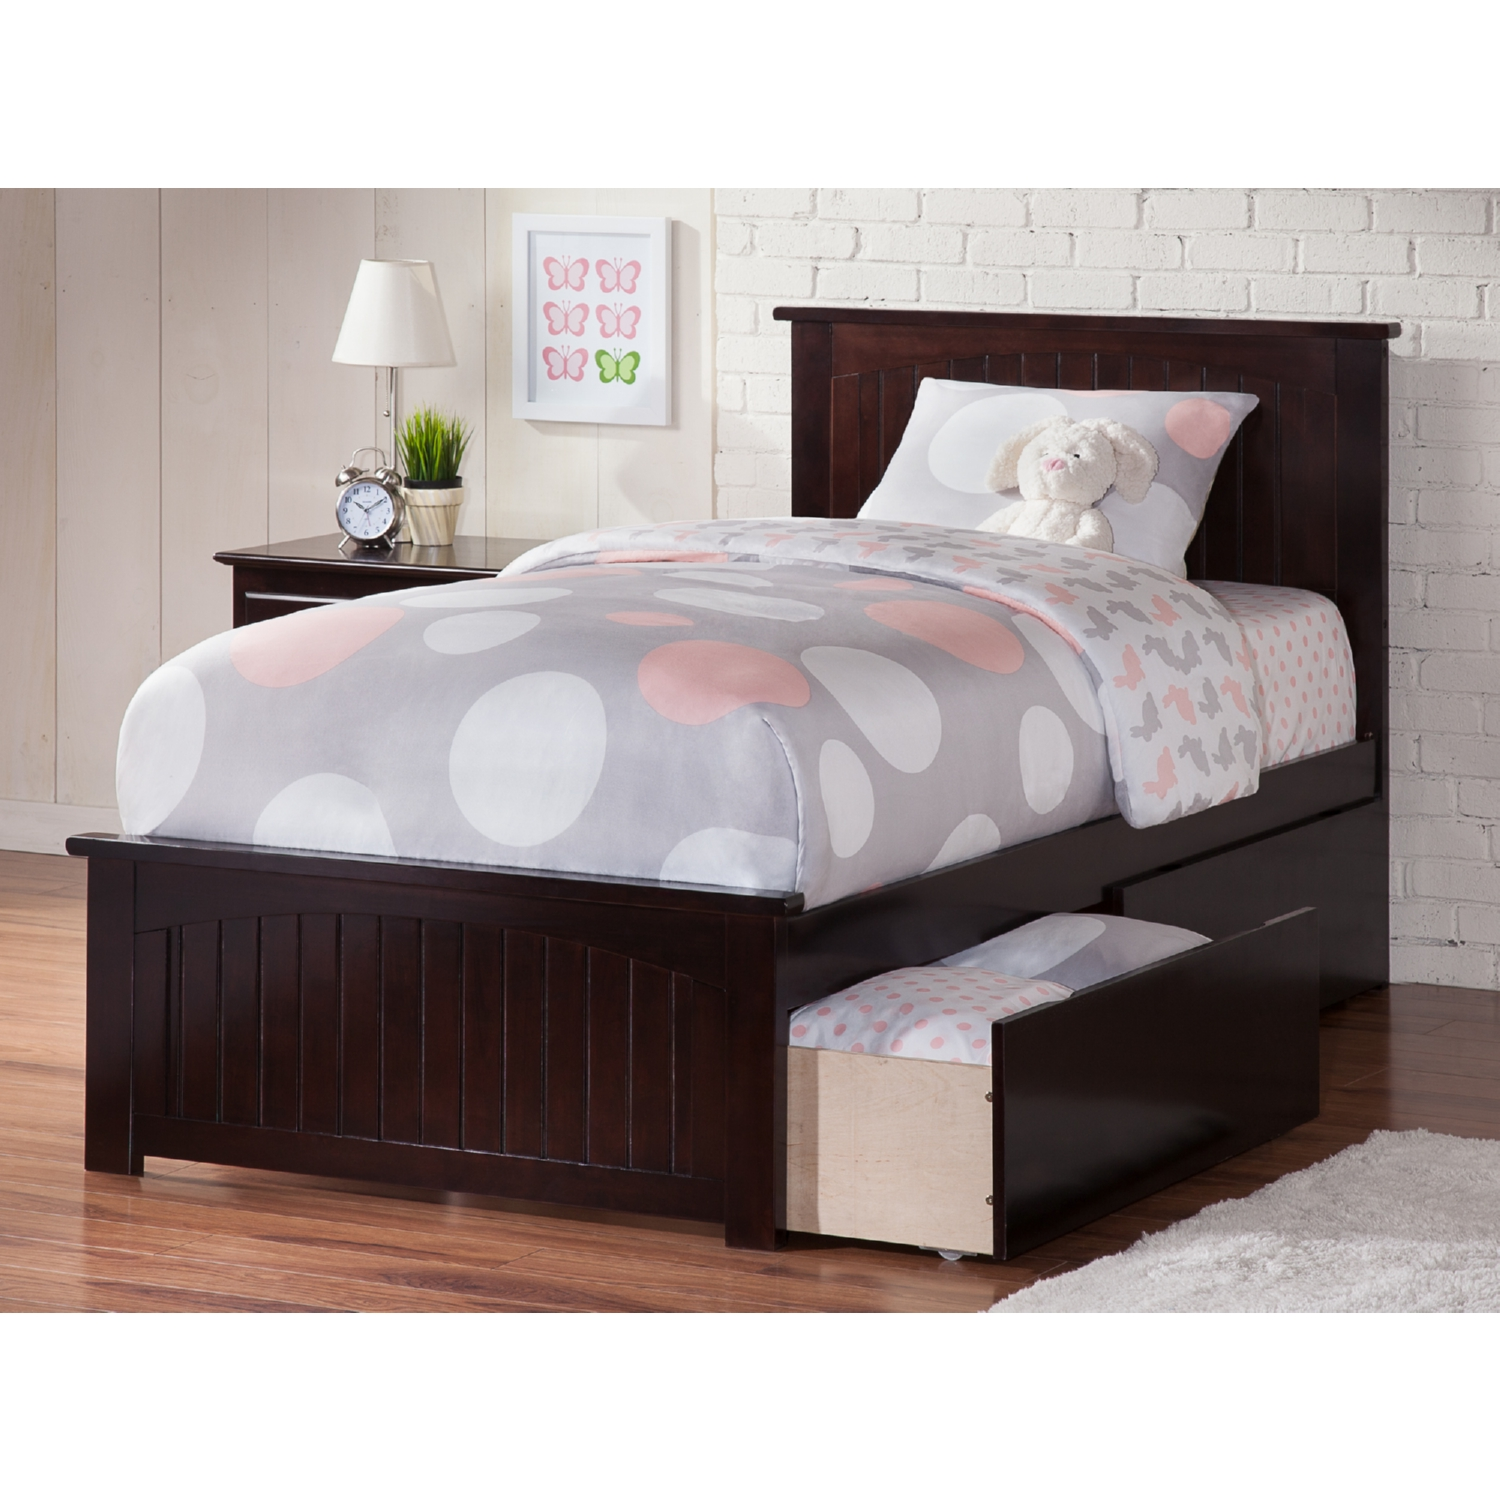 Atlantic furniture ar8216111 nantucket twin xl bed w for Urban home beds